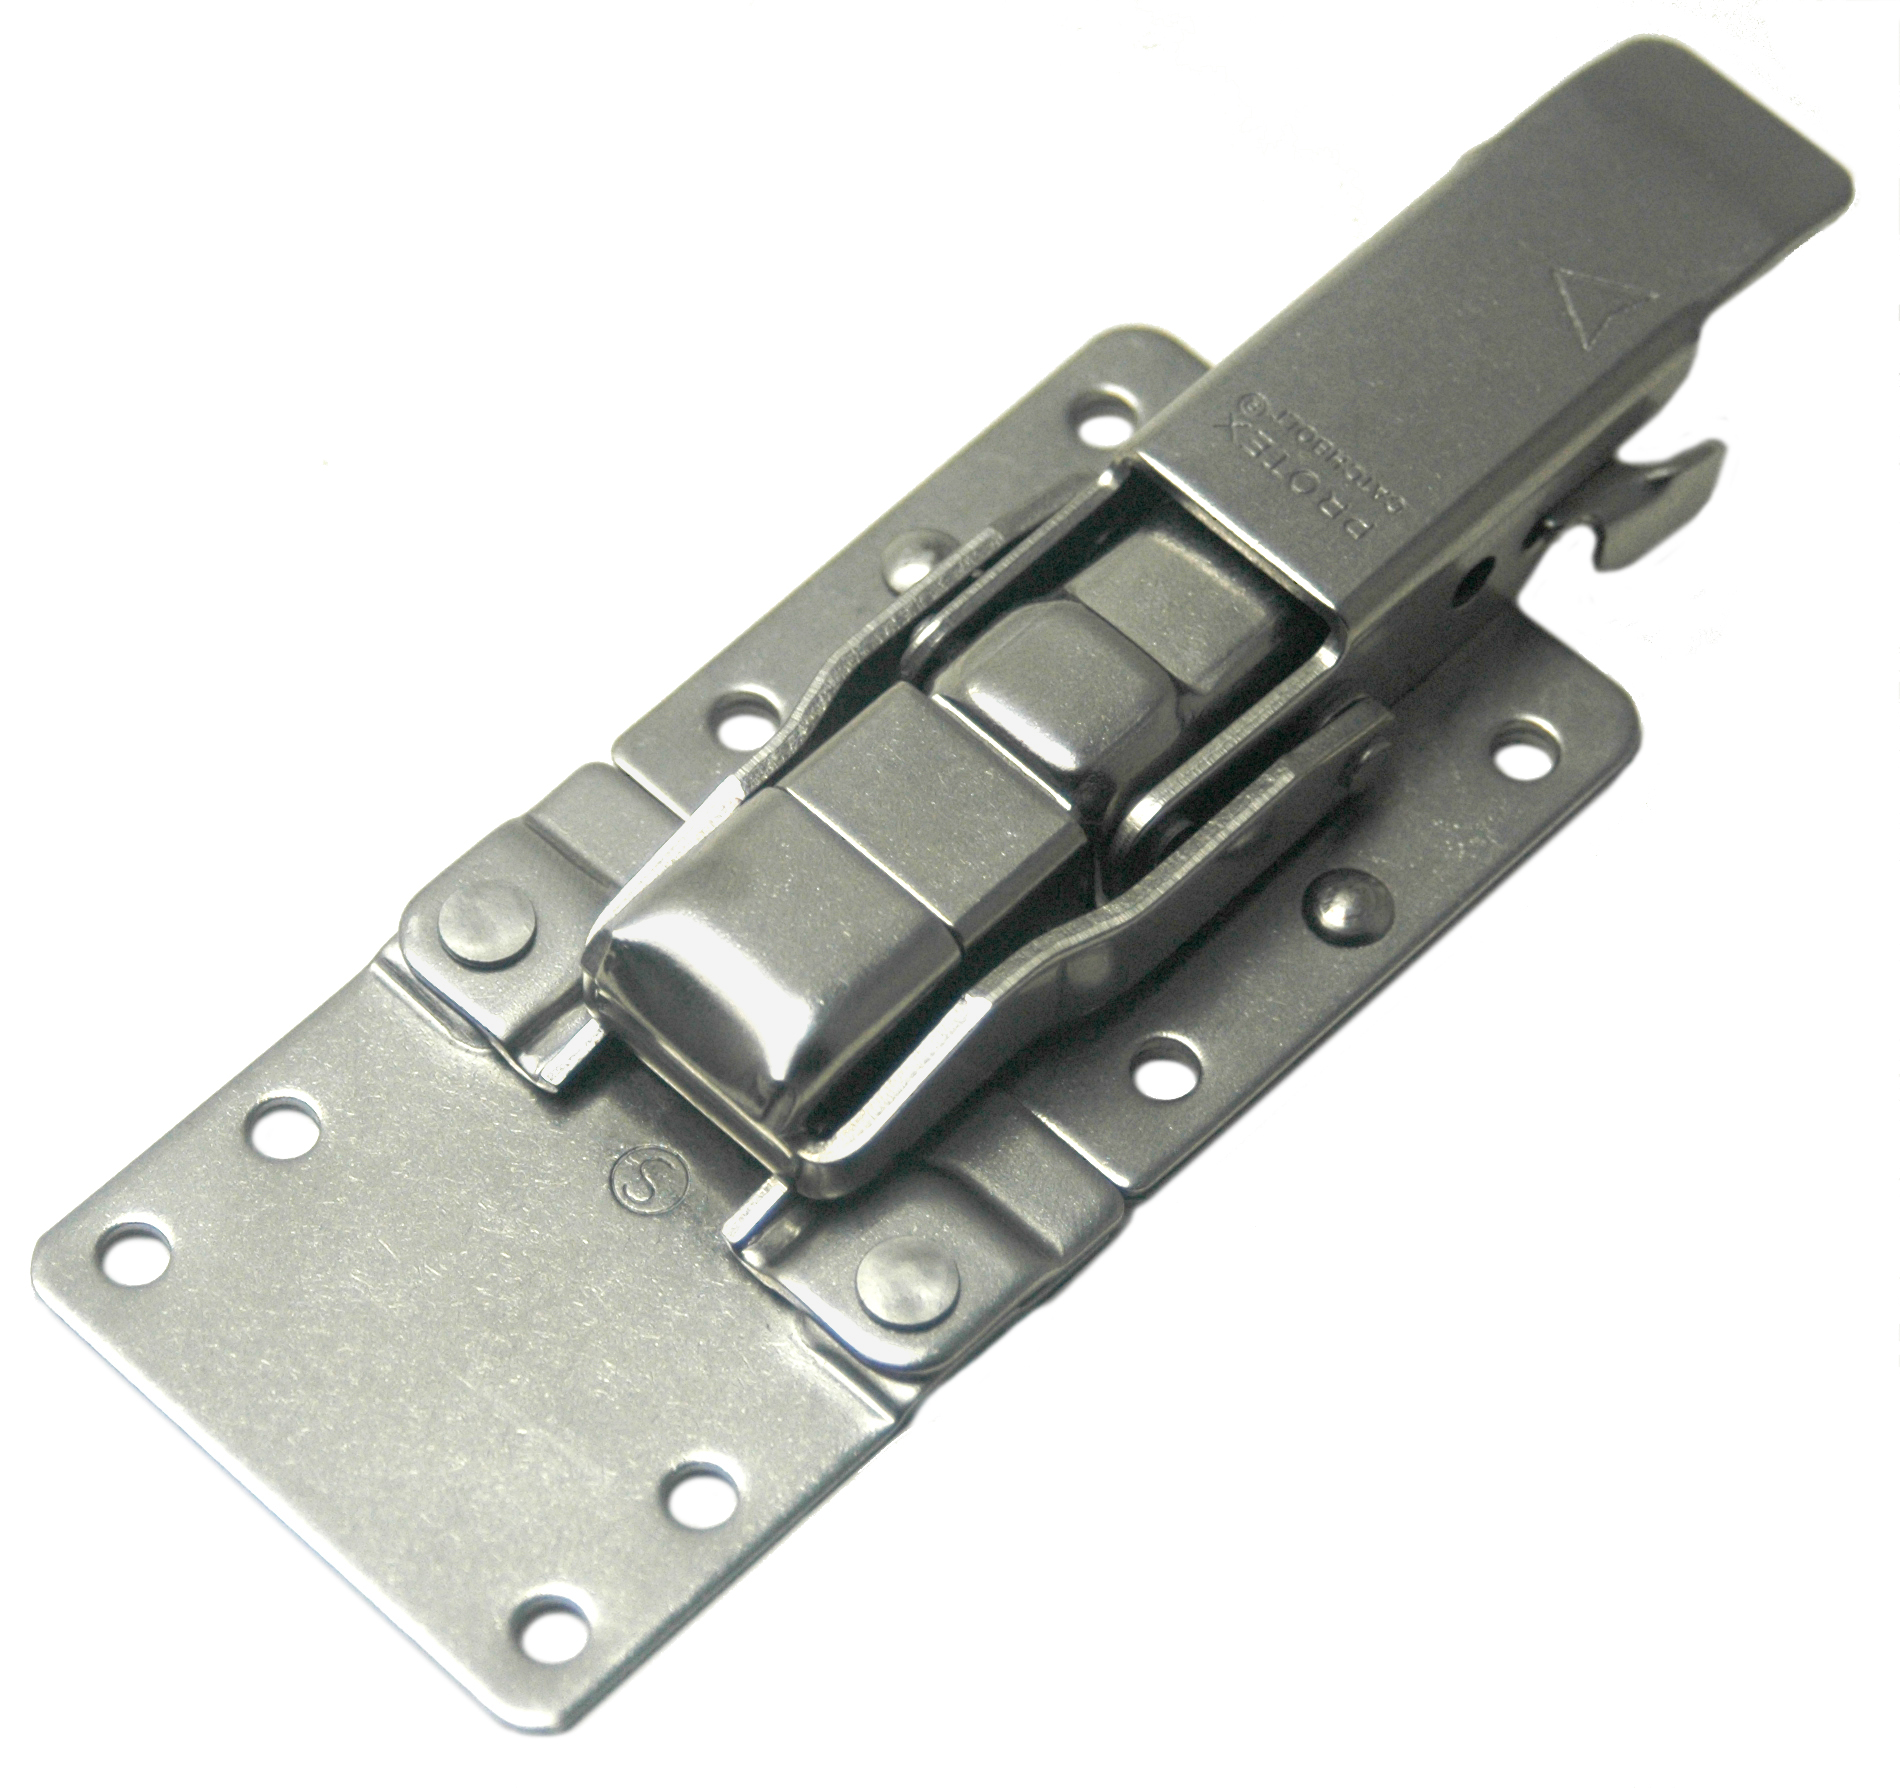 CatchBolt with Extension Plate and Safety Catch Stainless Steel (Natural)